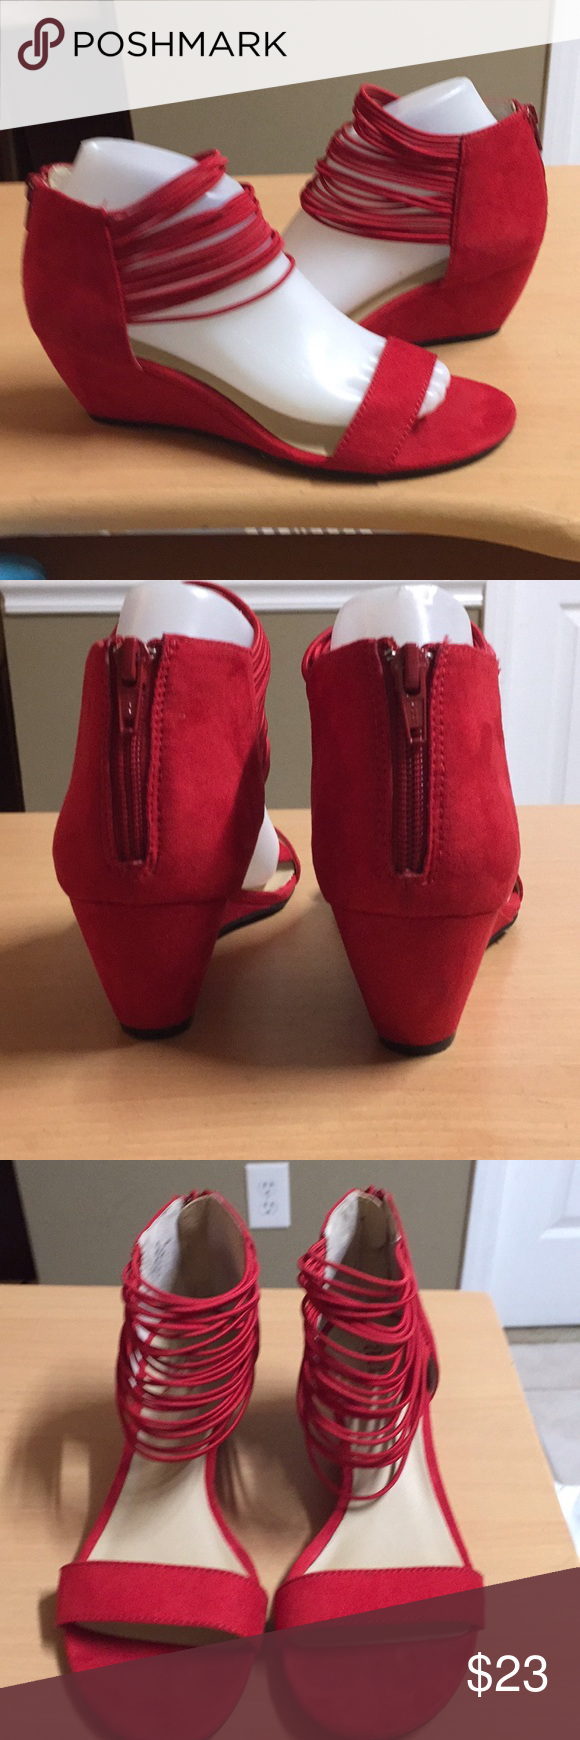 "a.n.a. Red suede low wedge sandal back zip 8.5 a.n.a. Red fabric suede sandals low 3"" wedge heel back zip closure whimsical and adorable not a single flaw. Women size 8.5 medium a.n.a Shoes Sandals #lowwedgesandals a.n.a. Red suede low wedge sandal back zip 8.5 a.n.a. Red fabric suede sandals low 3"" wedge heel back zip closure whimsical and adorable not a single flaw. Women size 8.5 medium a.n.a Shoes Sandals #lowwedgesandals a.n.a. Red suede low wedge sandal back zip 8.5 a.n.a. Red fabric s #lowwedgesandals"